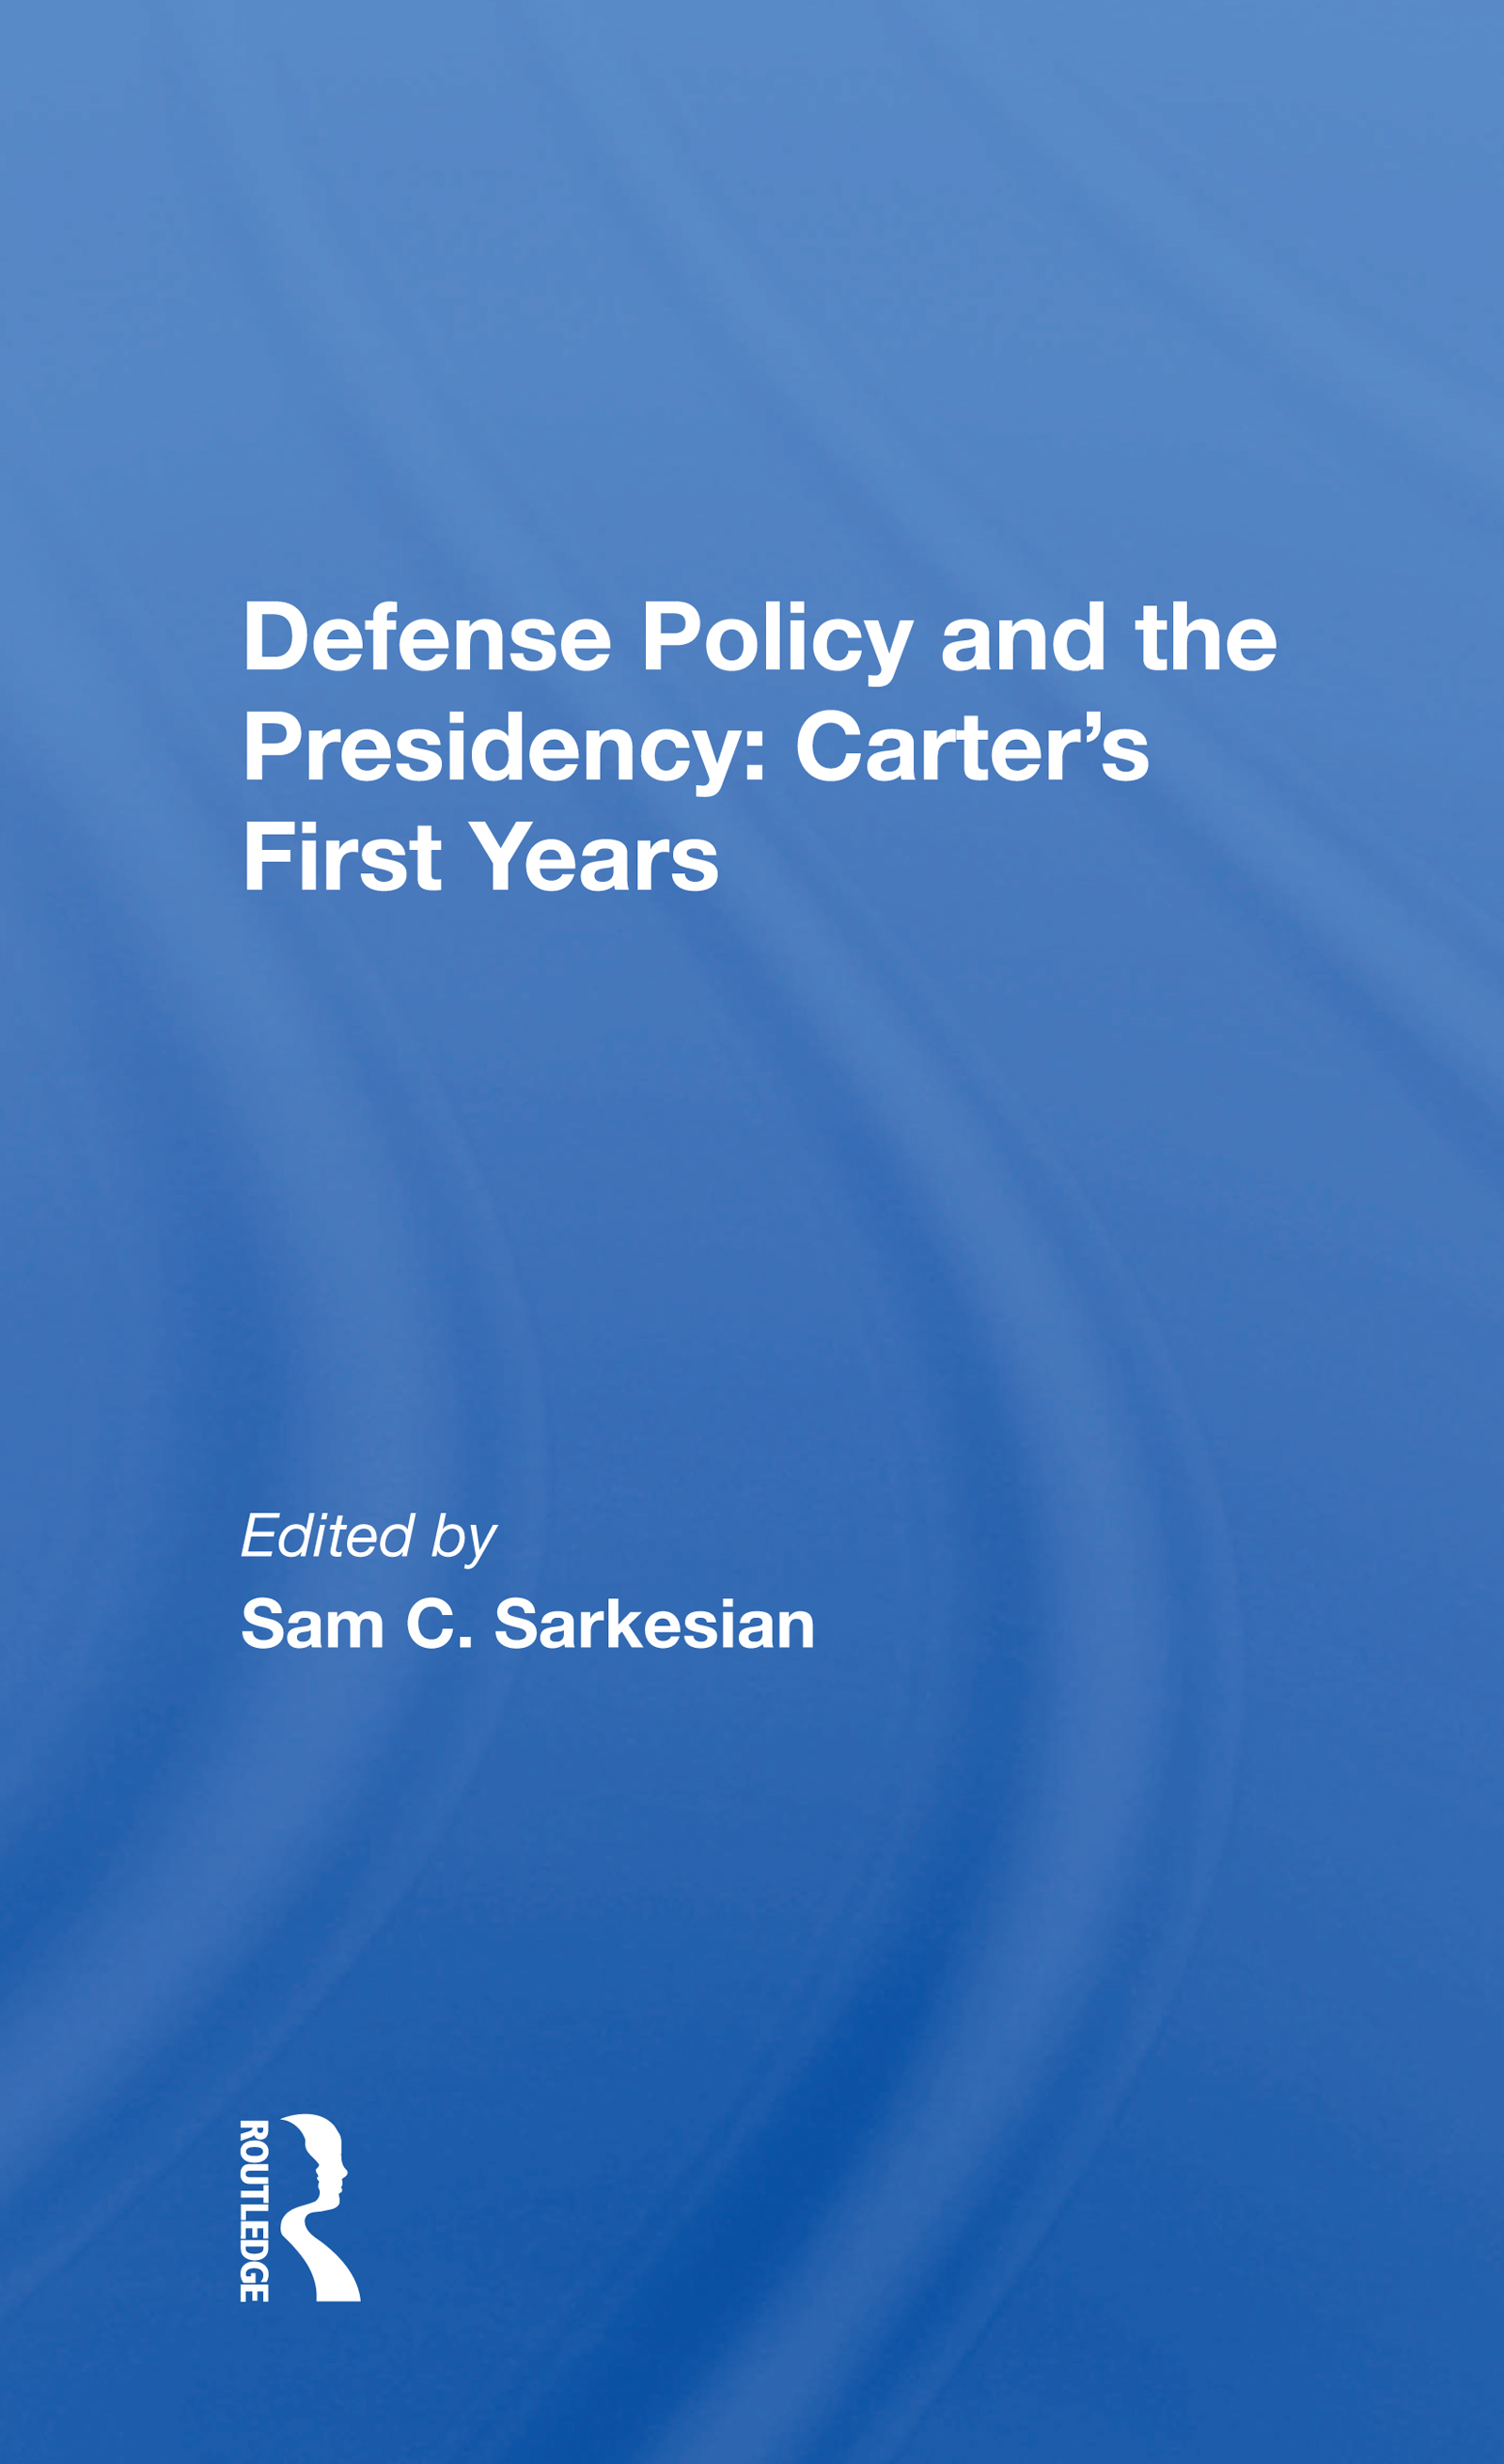 Defense Policy and the Presidency: Carter's First Years